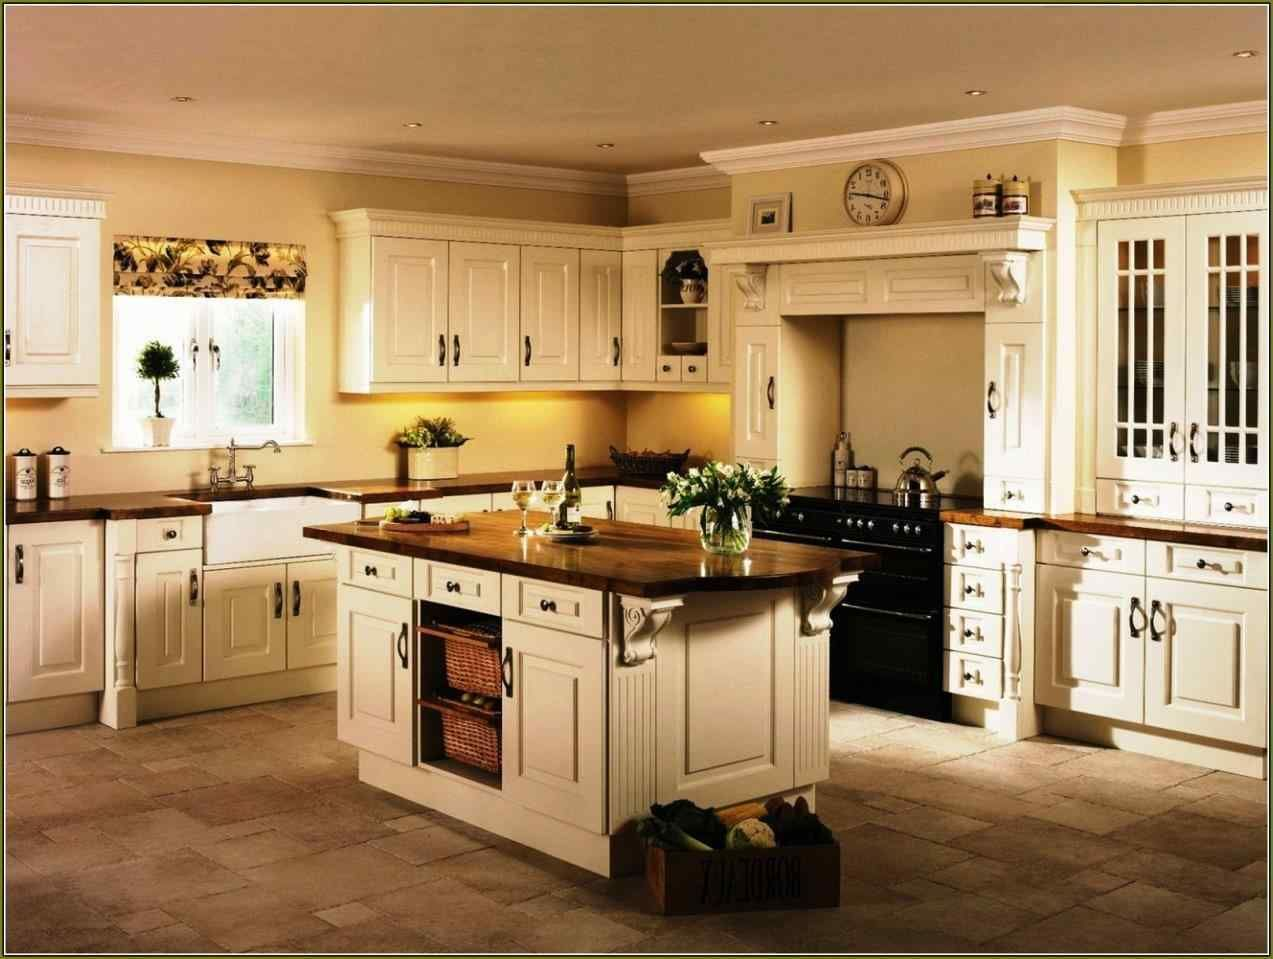 10 Diy Kitchen Island Ideas 2020 Less Costly Cream Kitchen Cabinets Kitchen Island Cabinets Kitchen Cupboards Paint